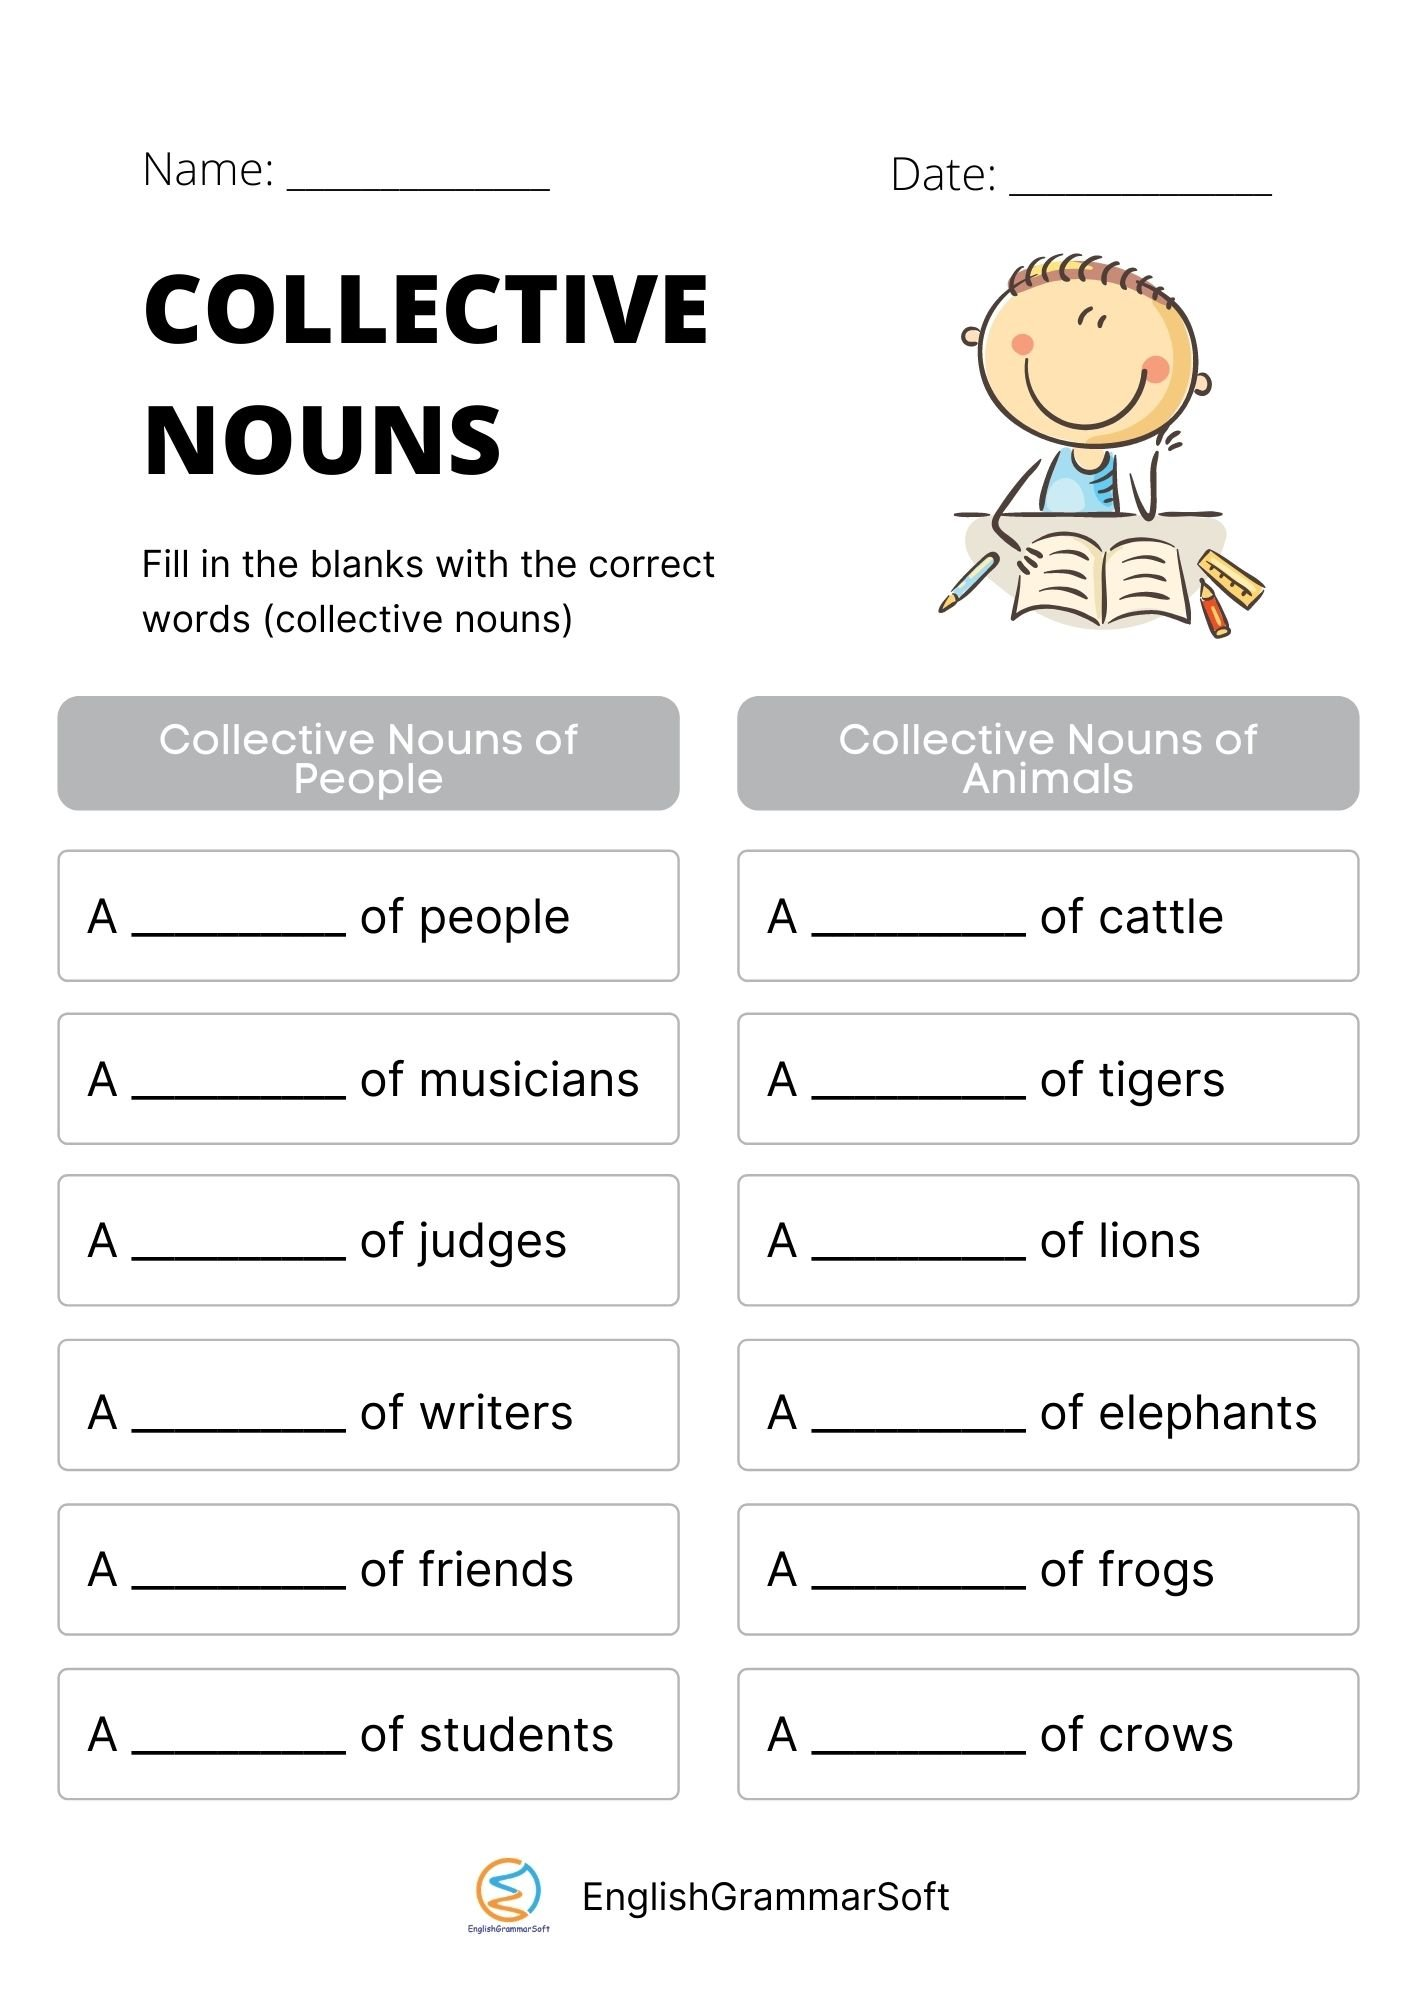 fill in the blanks with collective nouns with answers